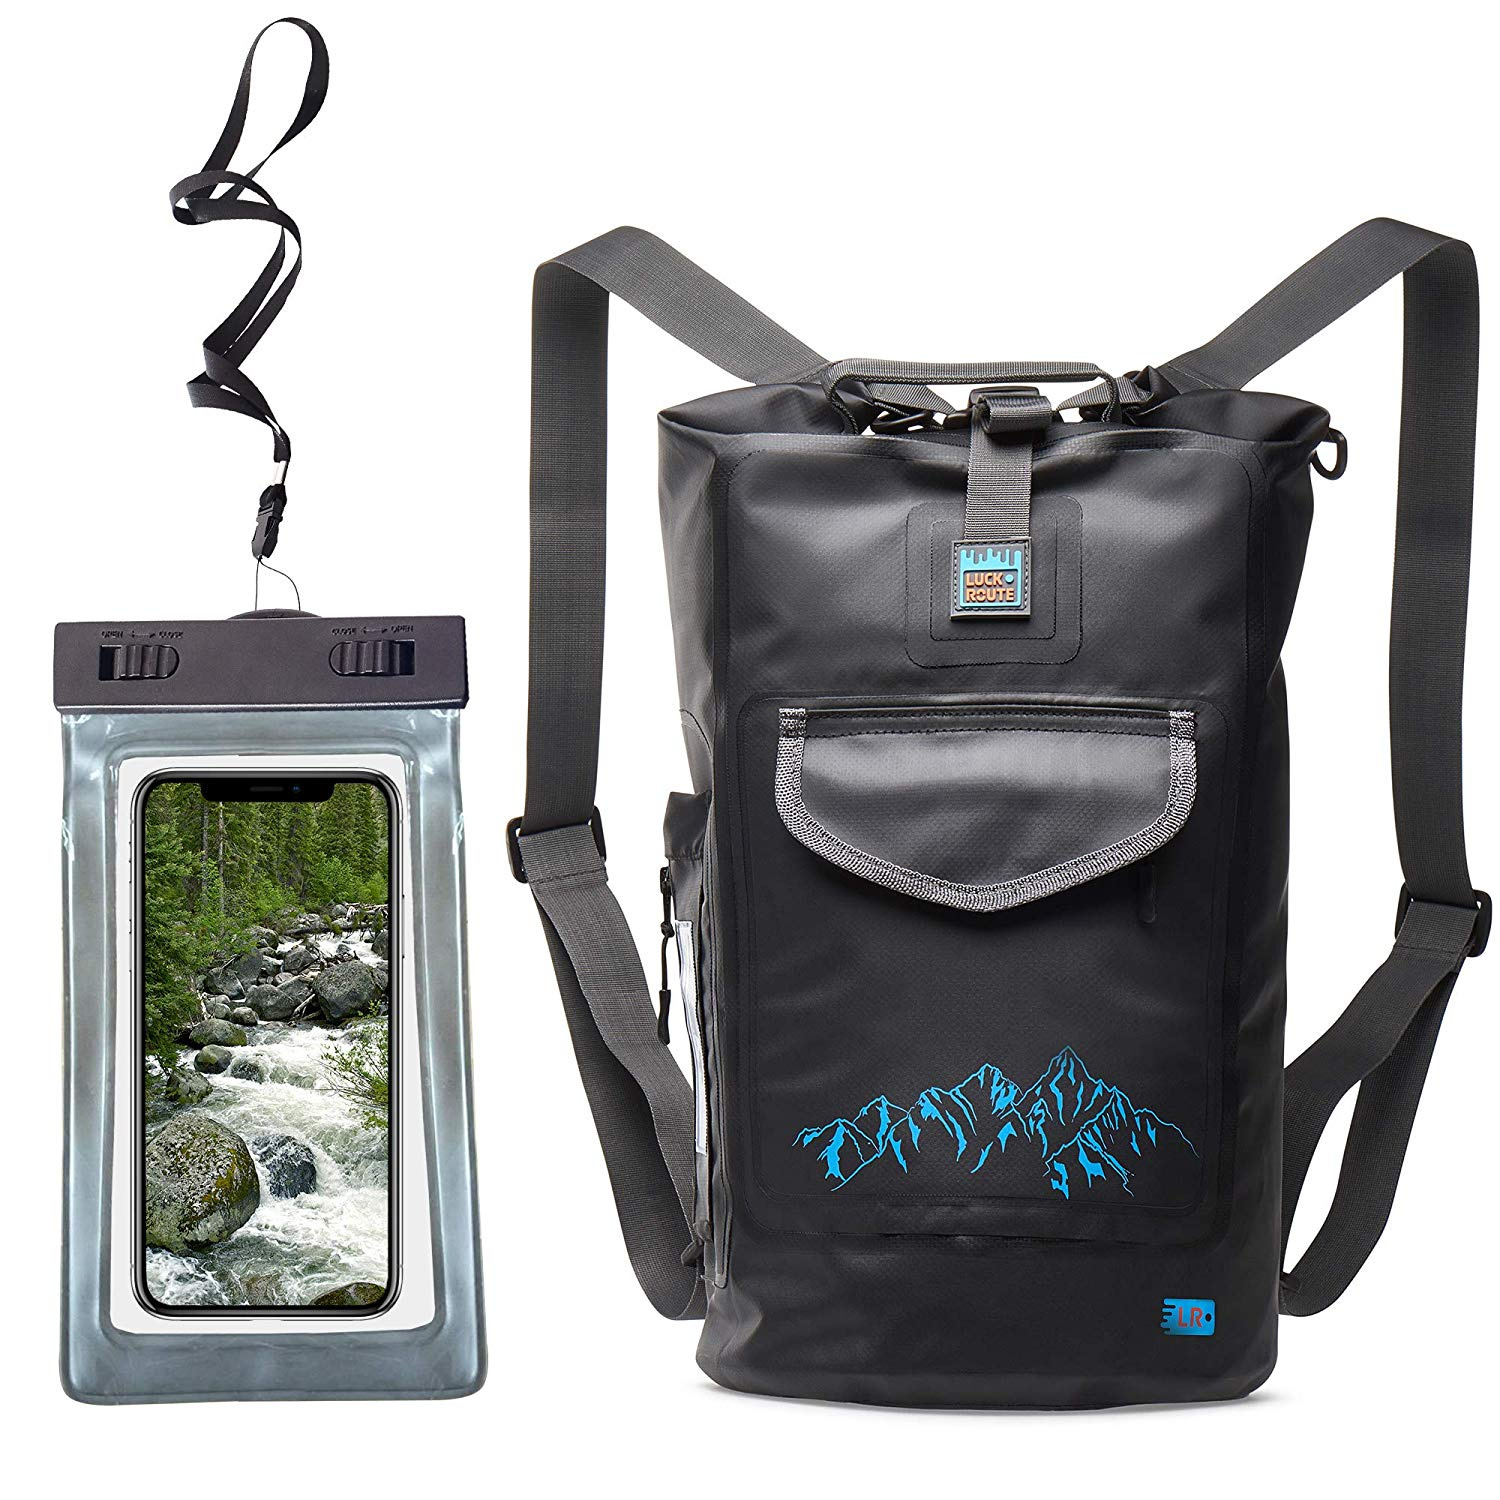 Backpack Straps Sports   Outdoors  Buy Online from Fishpond.co.nz 3a1499426b294